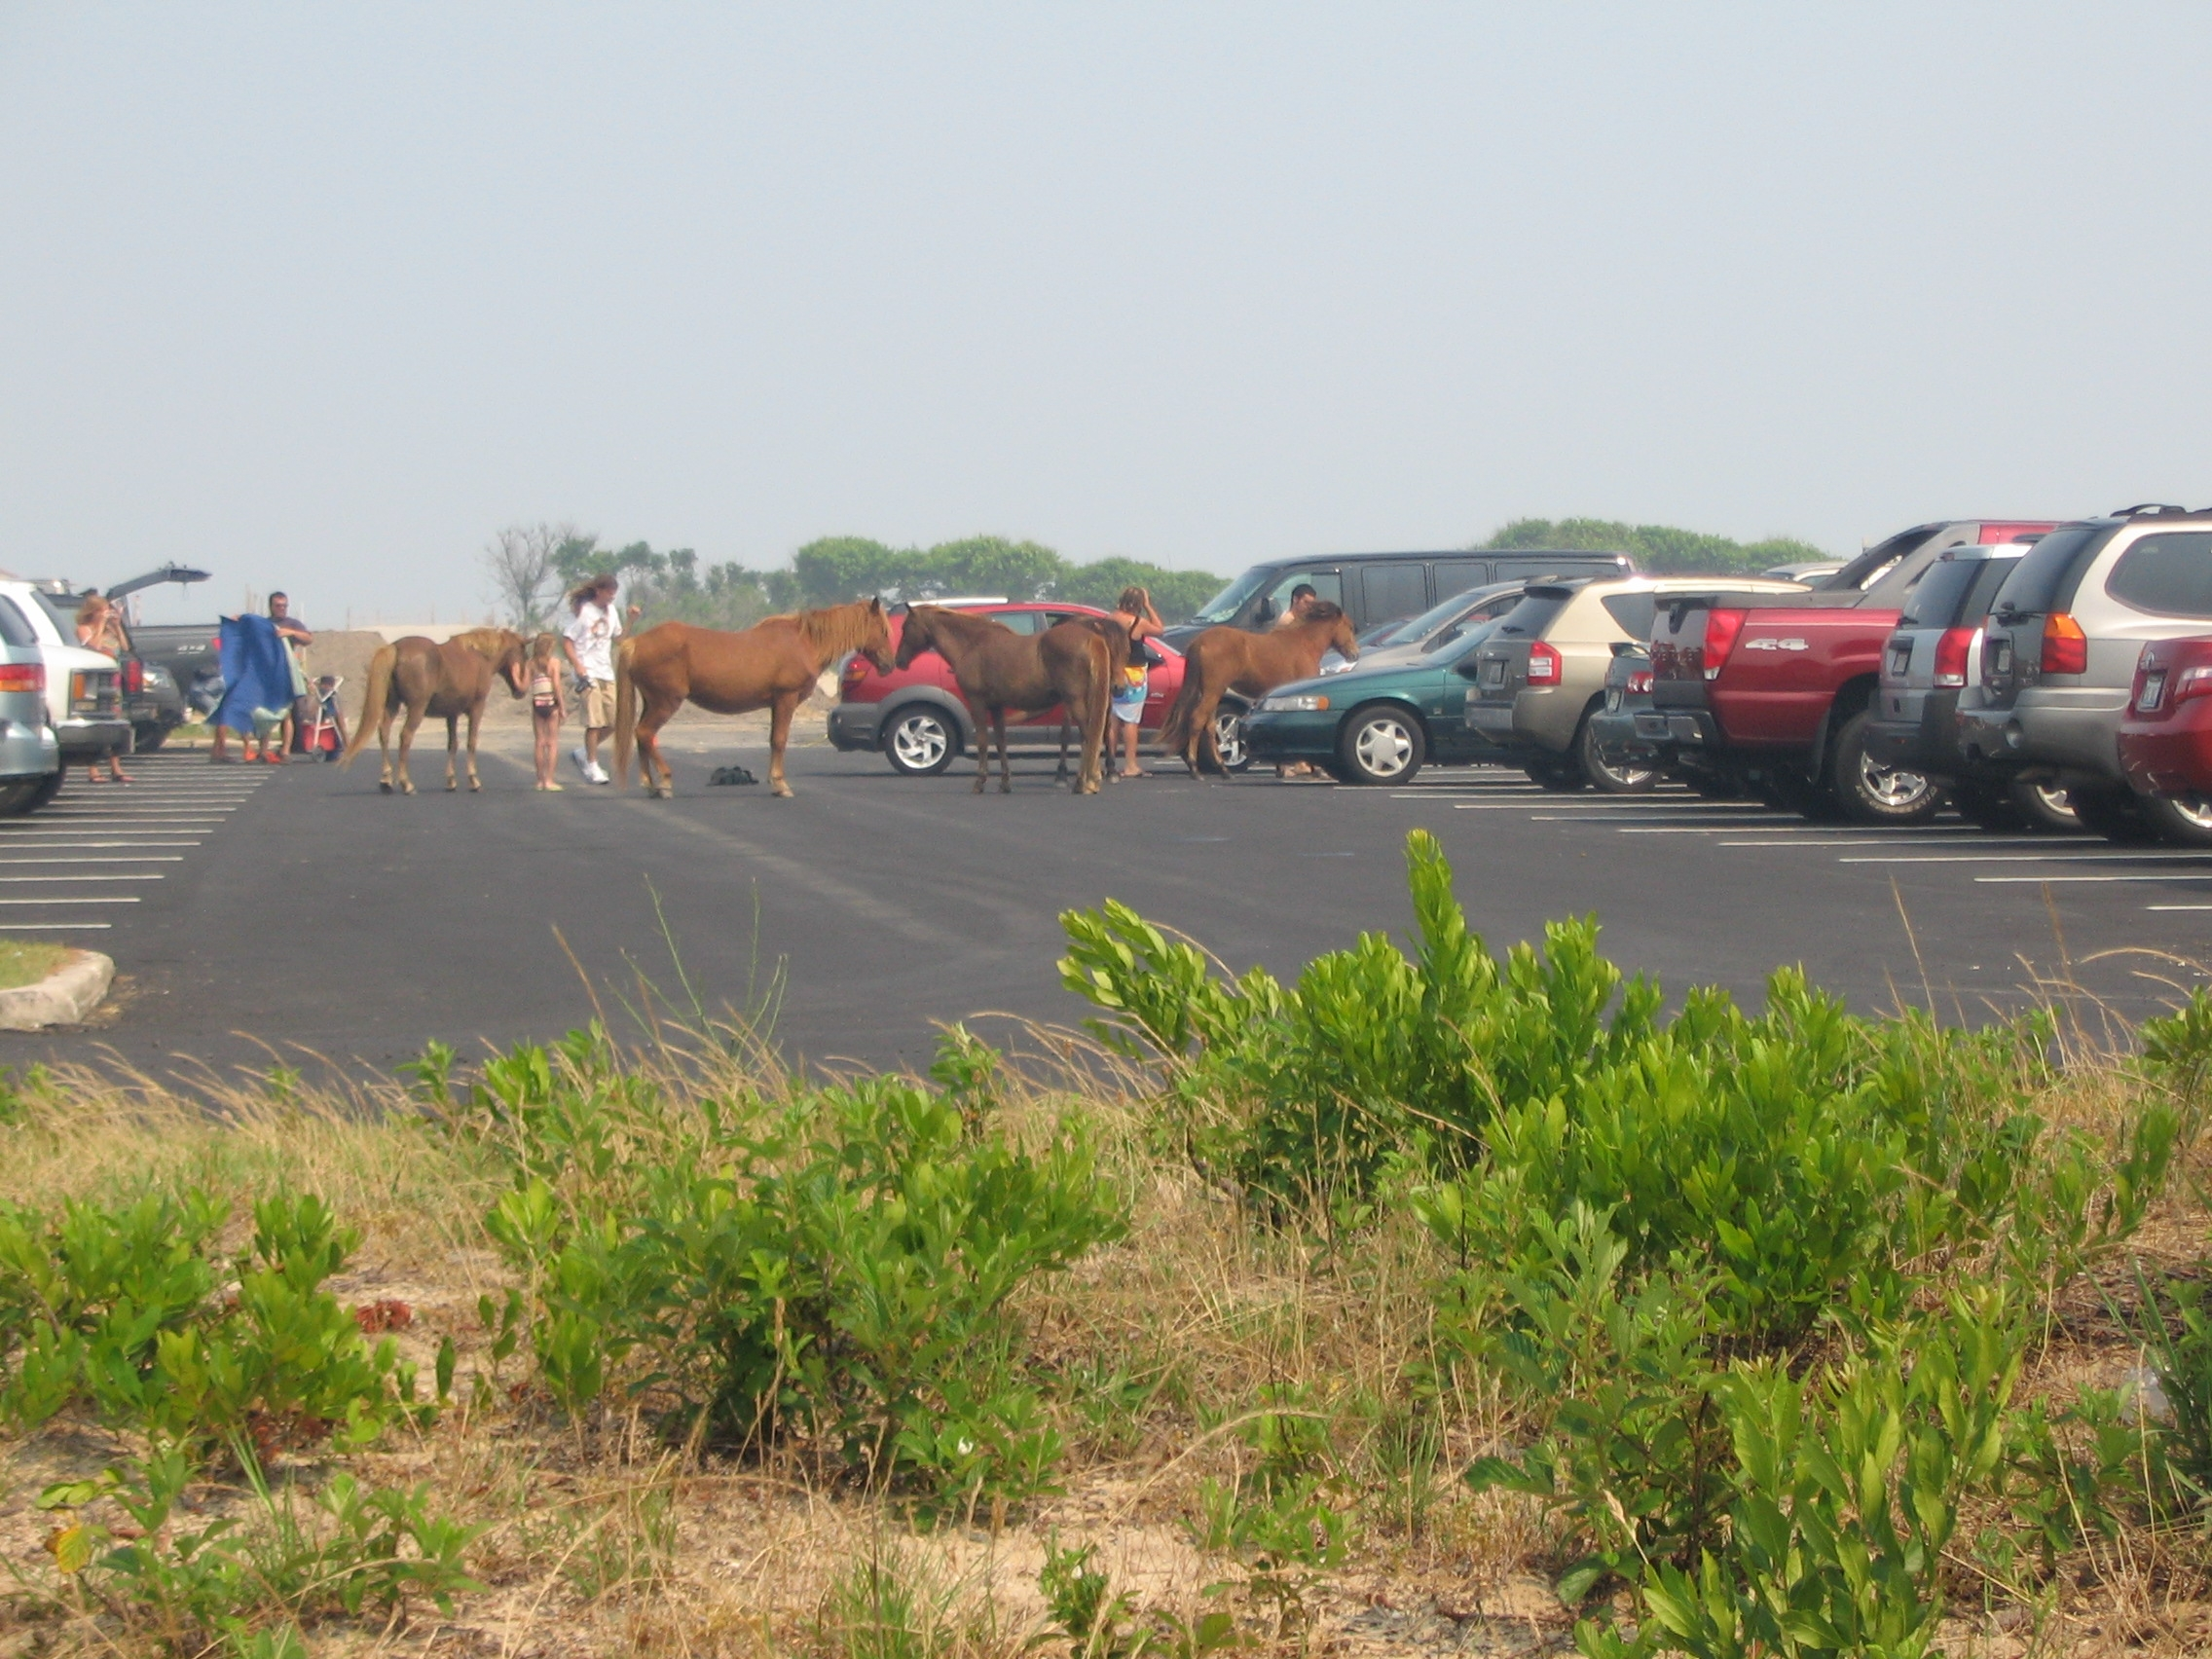 Ponies in the Parking Lot